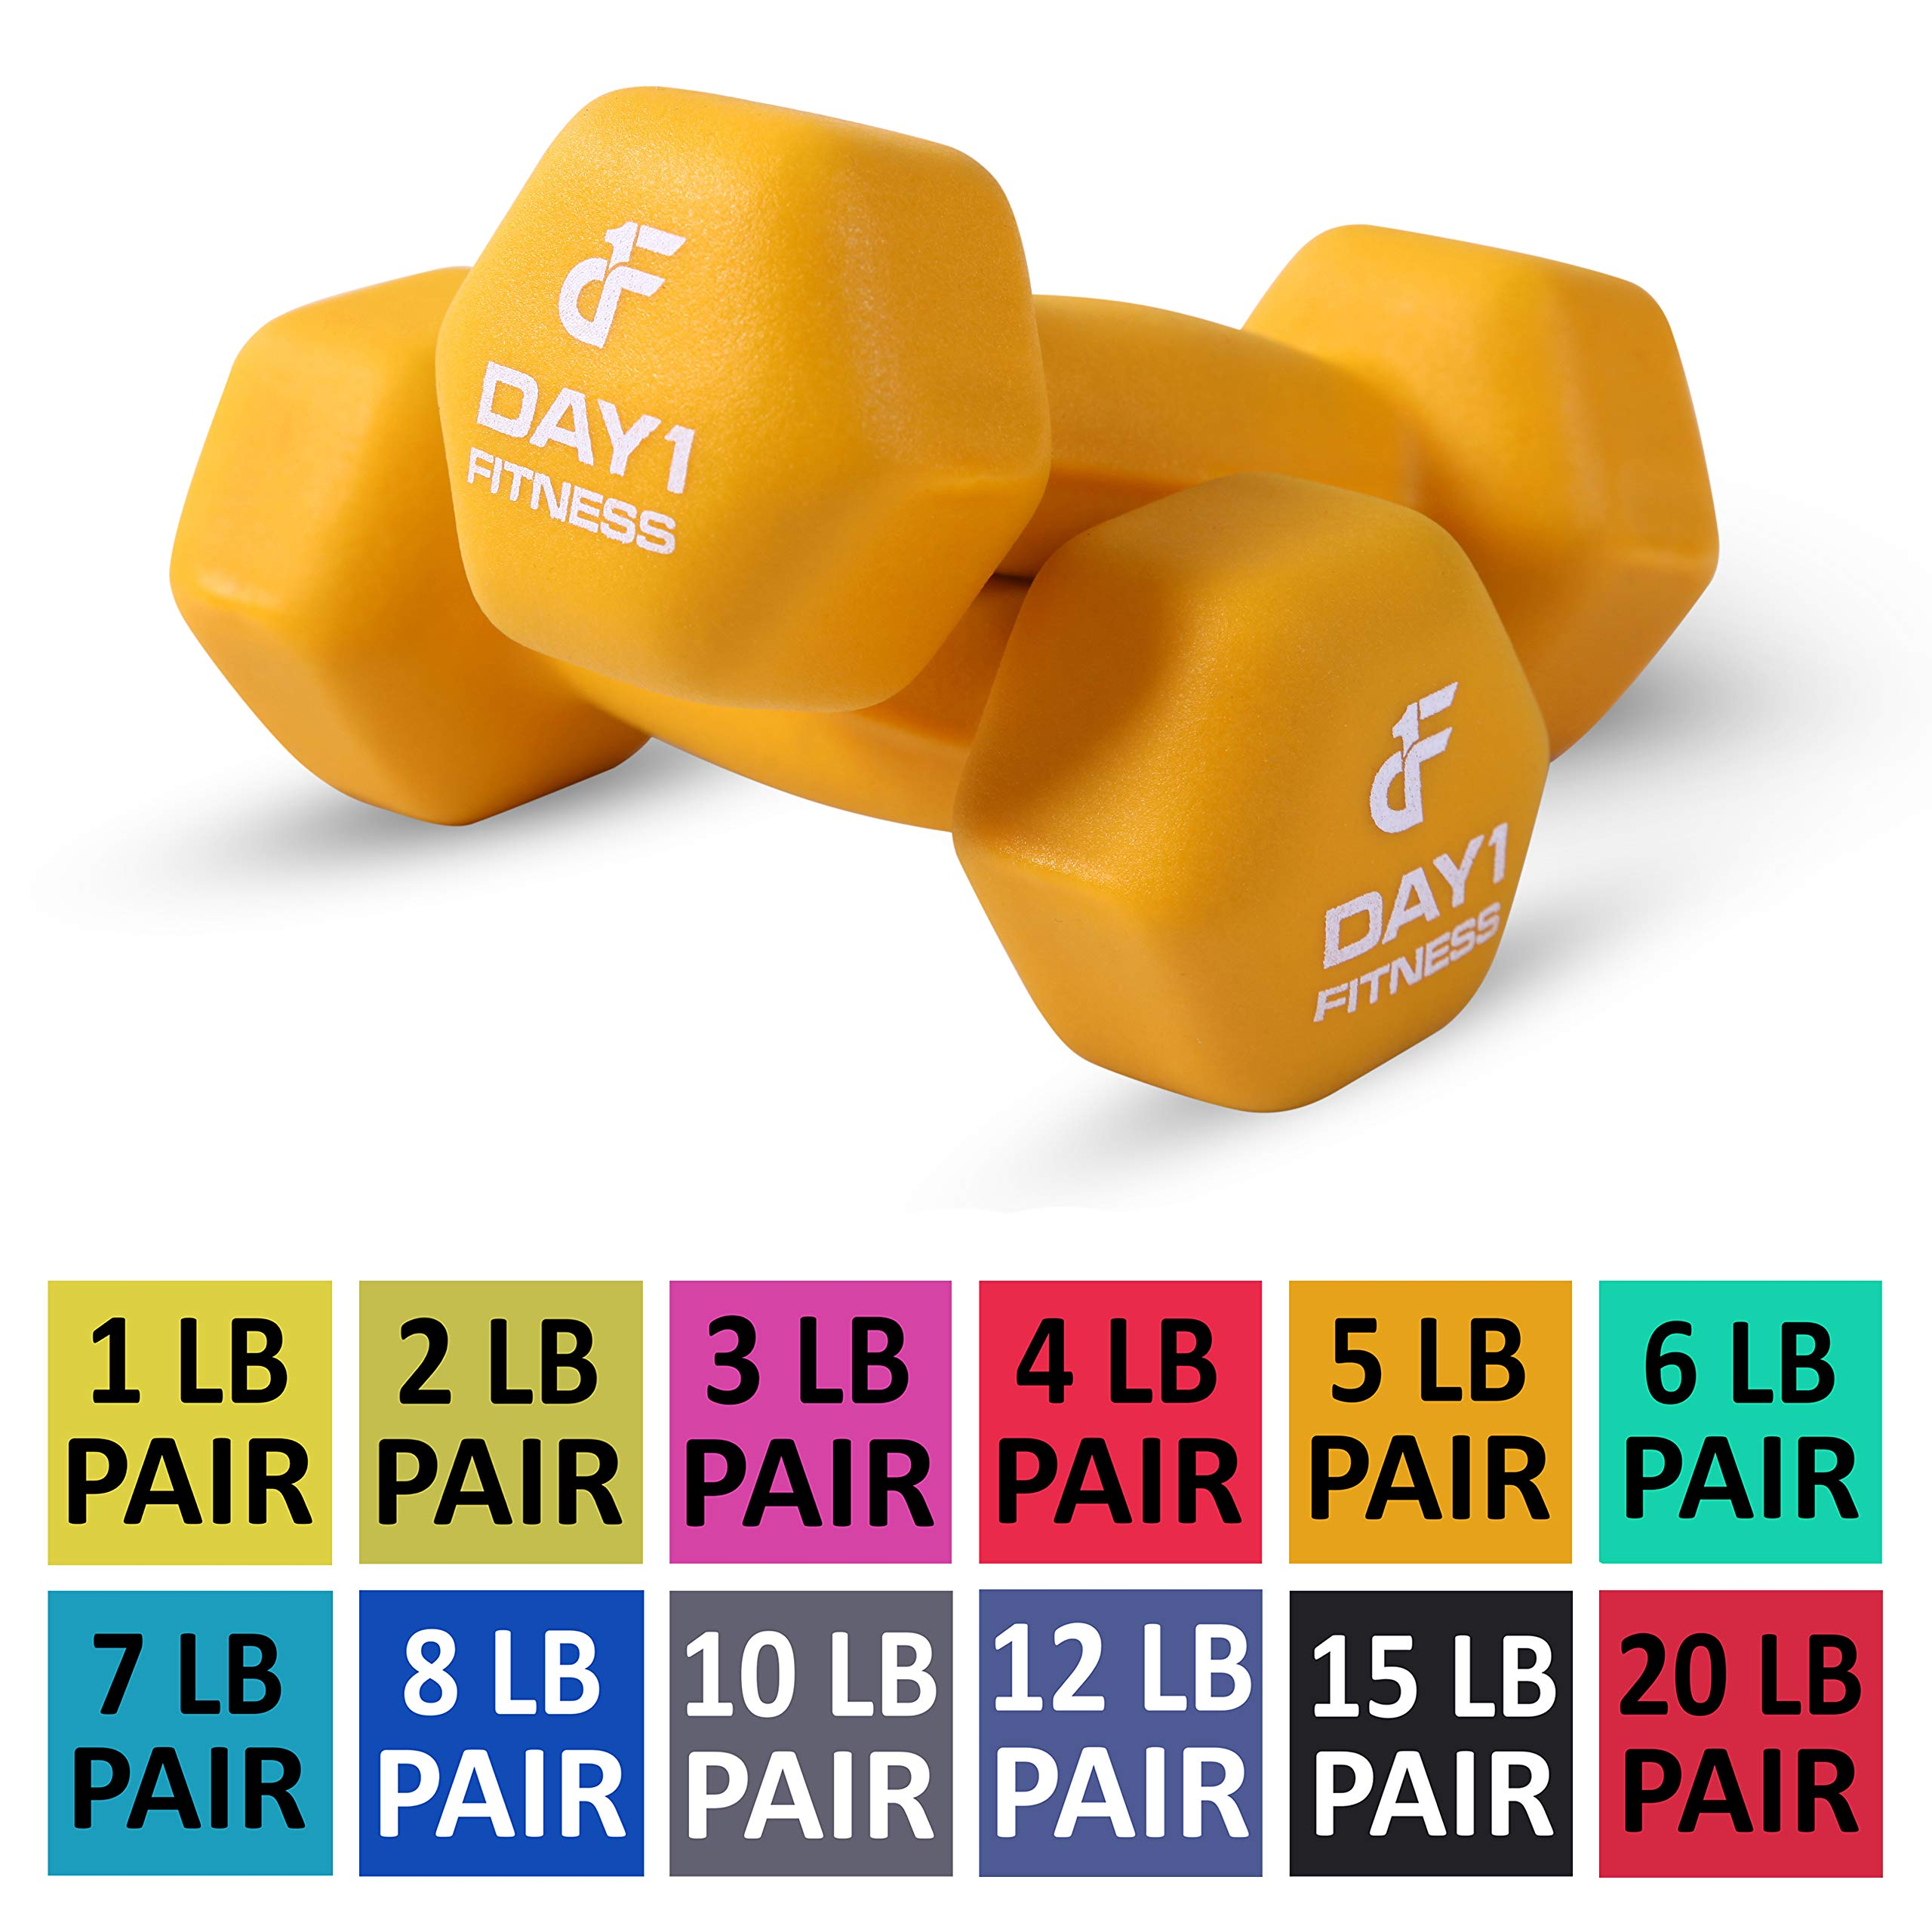 Day 1 Fitness Neoprene Dumbbell Pairs 5 Pounds - Non-Slip, Hexagon Shape, Color Coded, Easy to Read Hand Weights for Muscle Toning, Strength Building, Weight Loss